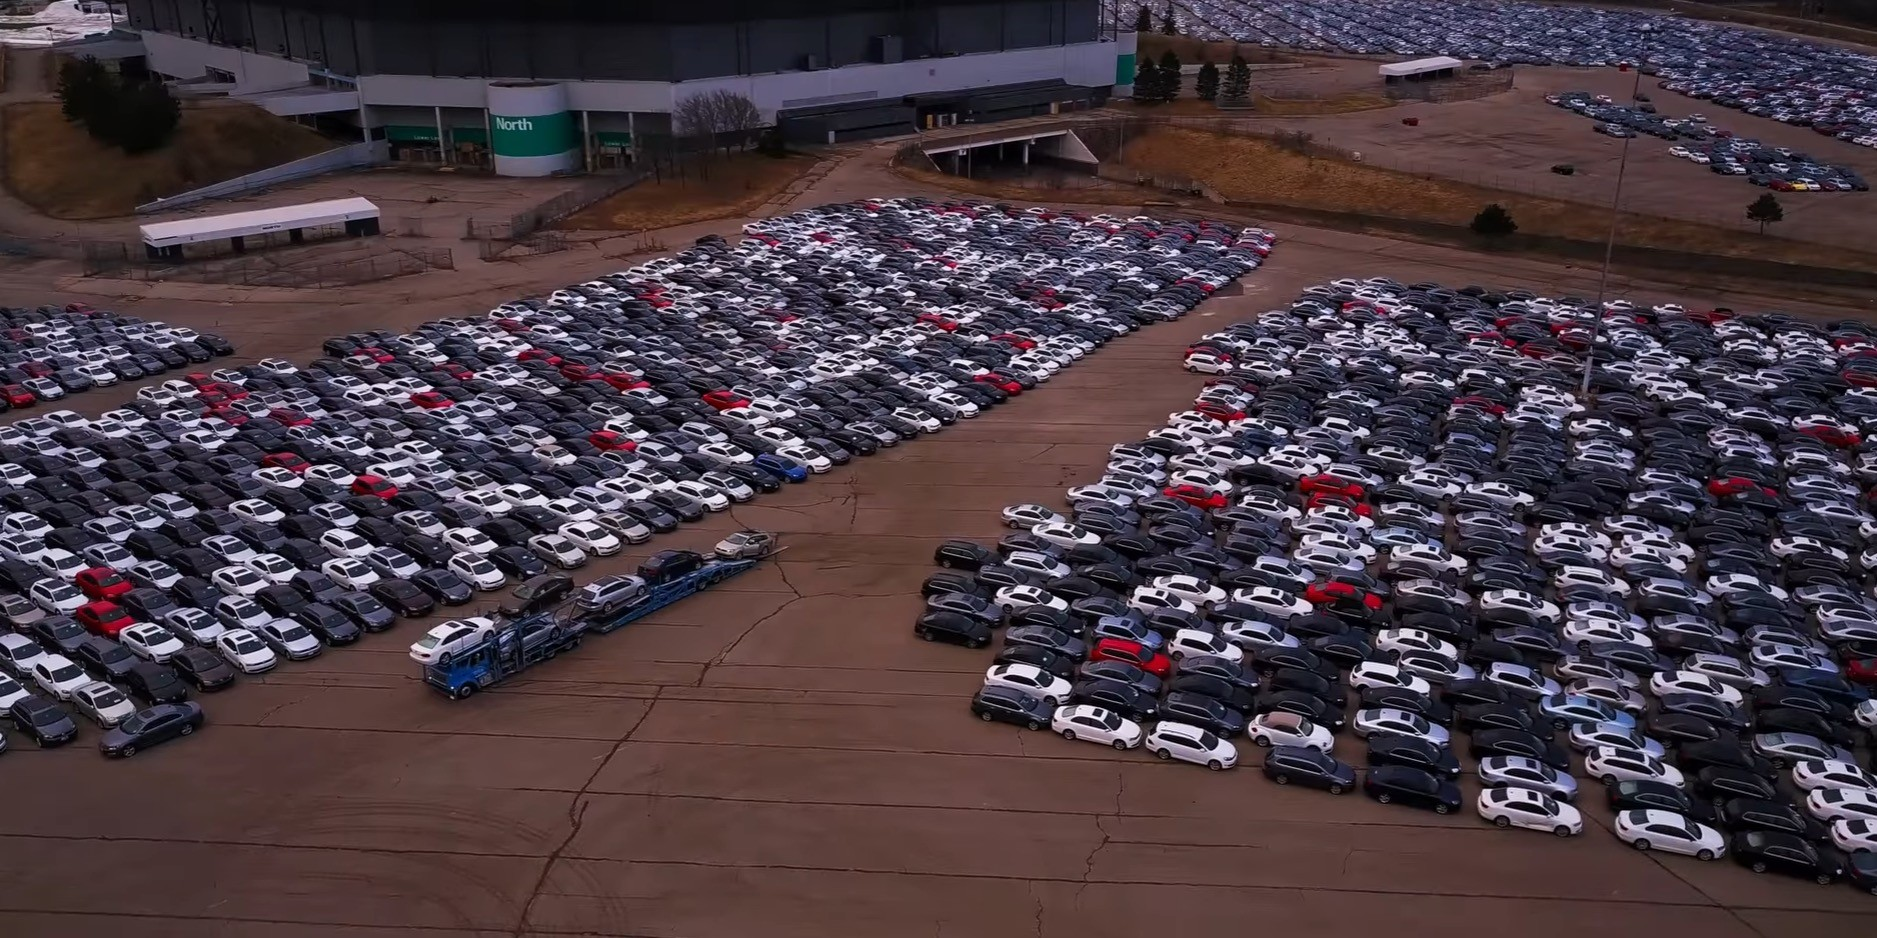 Storing Thousands of Volkswagens At A Stadium Is Illegal, Now What? - autoevolution